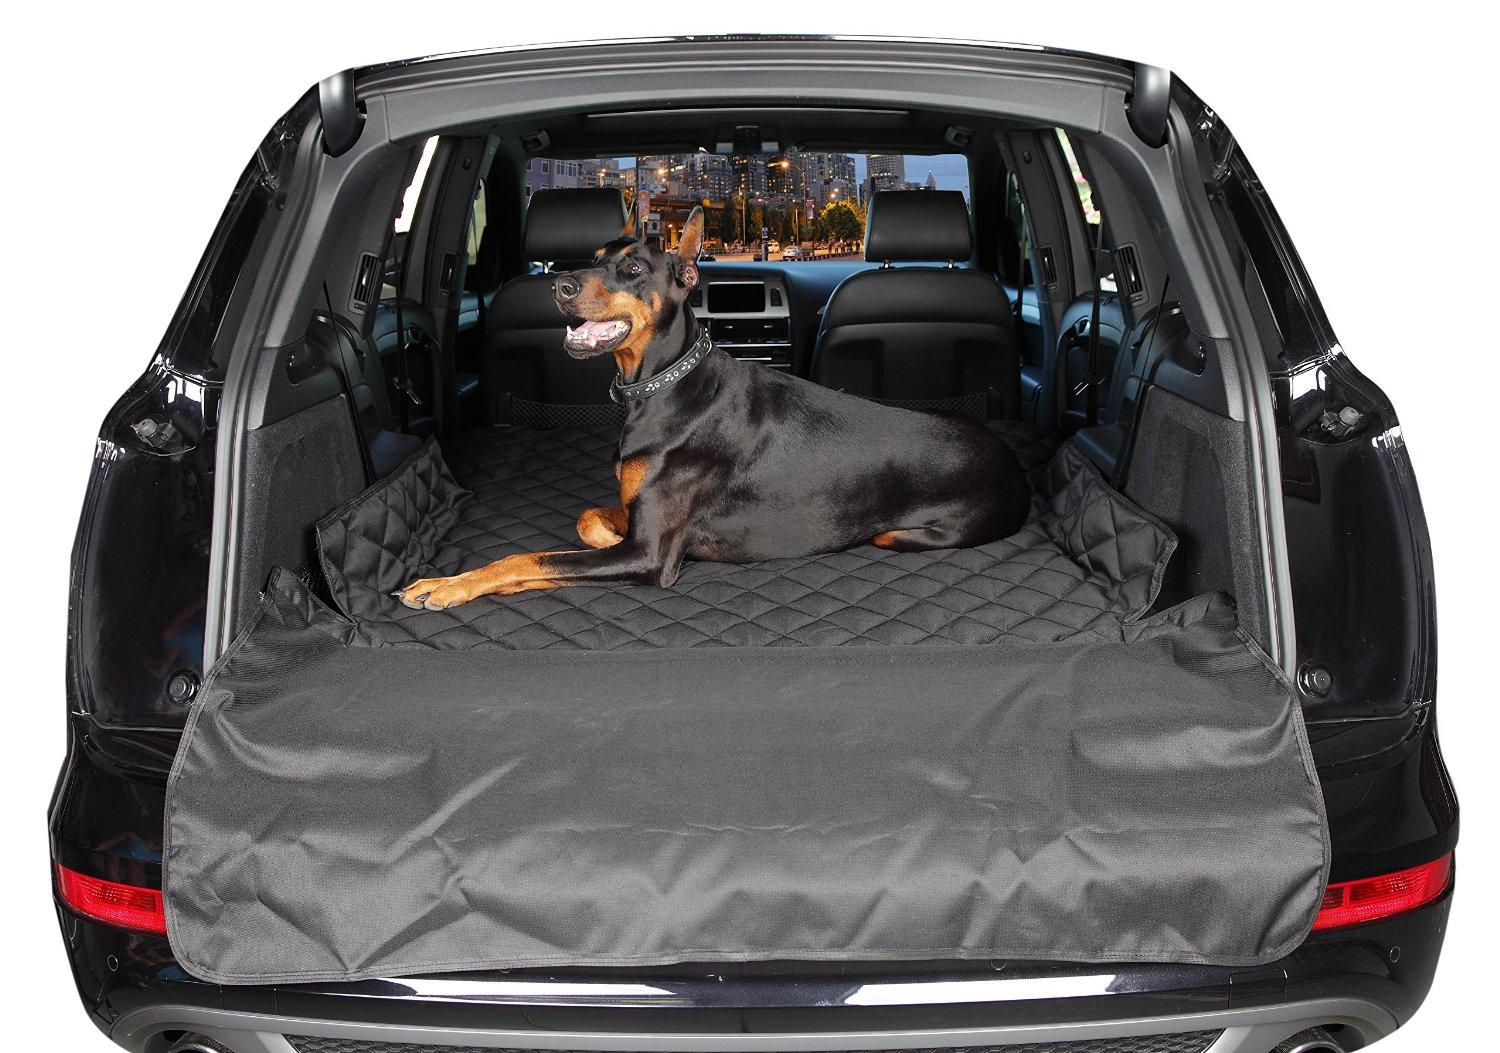 Extra 10% Off Cargo Liner For SUVs Waterproof Durable Material Sale @ amazon.com